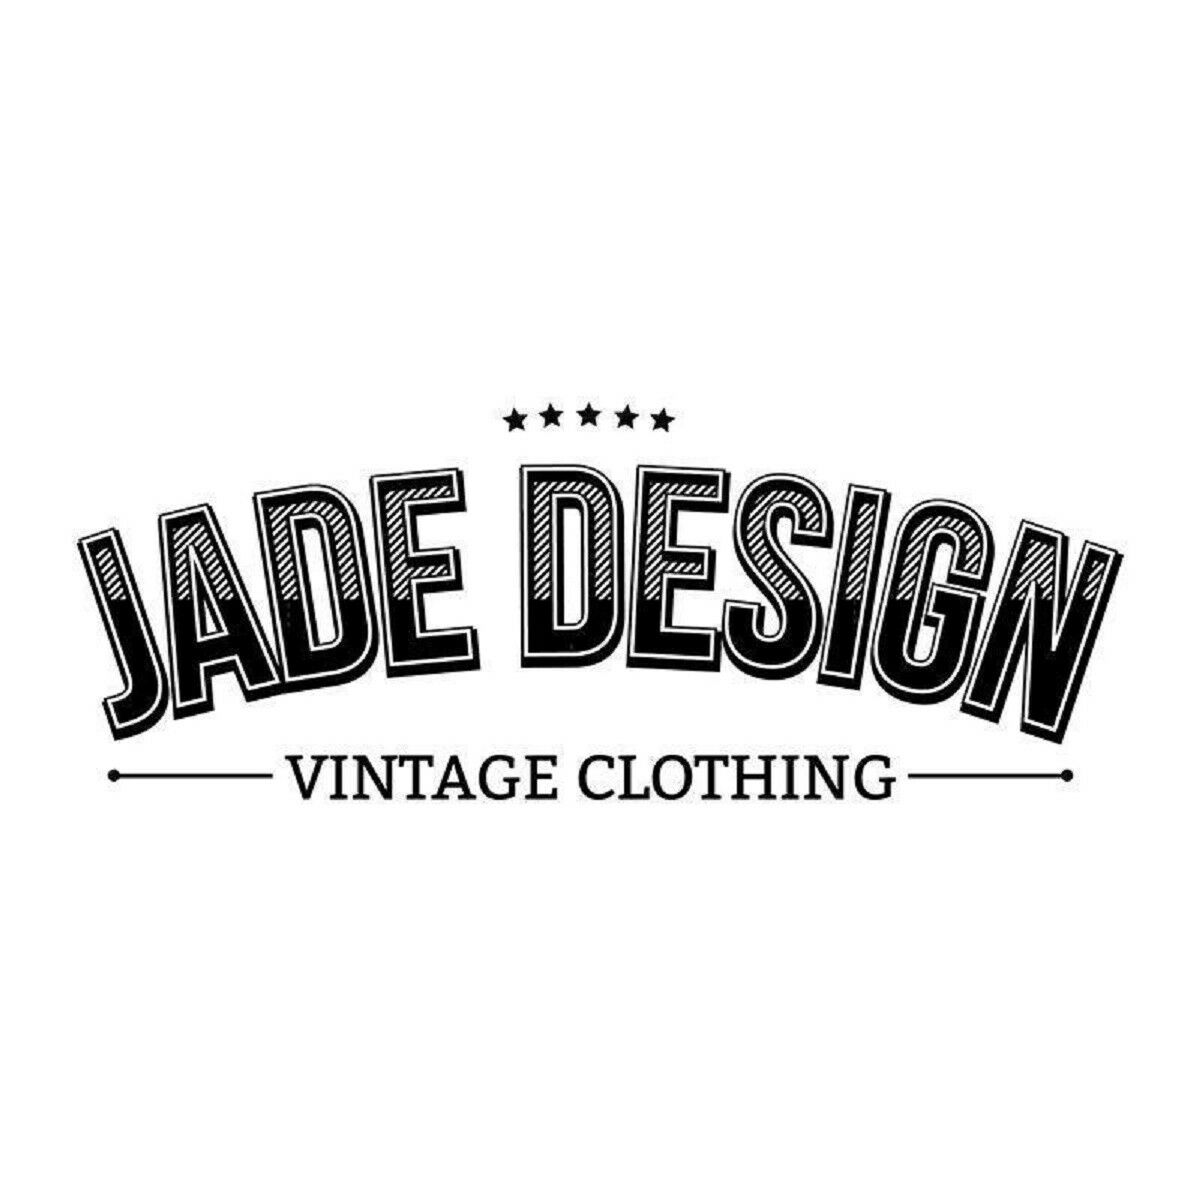 Jade Design Vintage Clothing